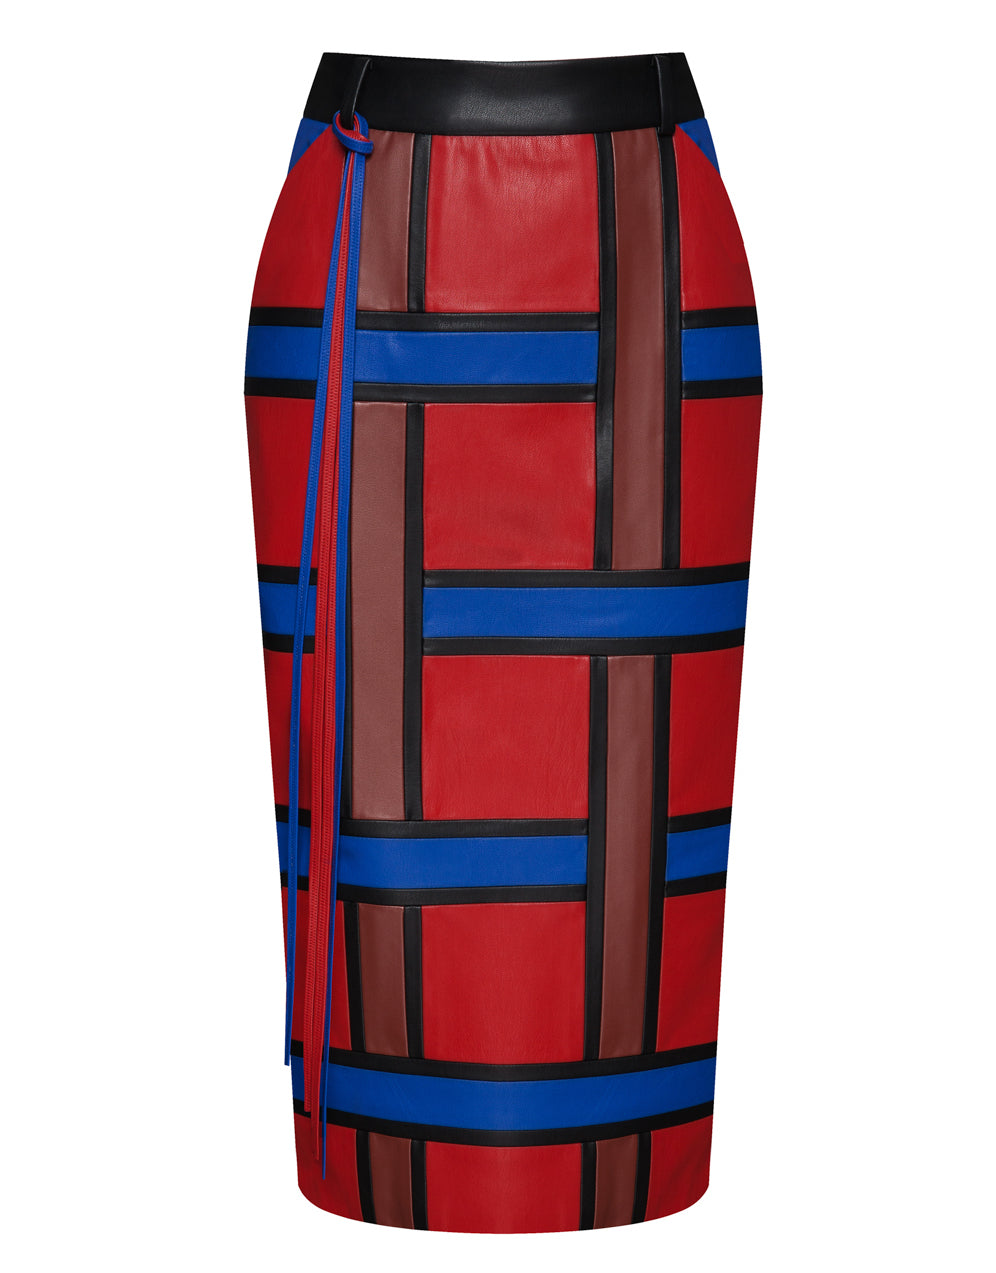 MONDRIAN PATCHWORK SKIRT